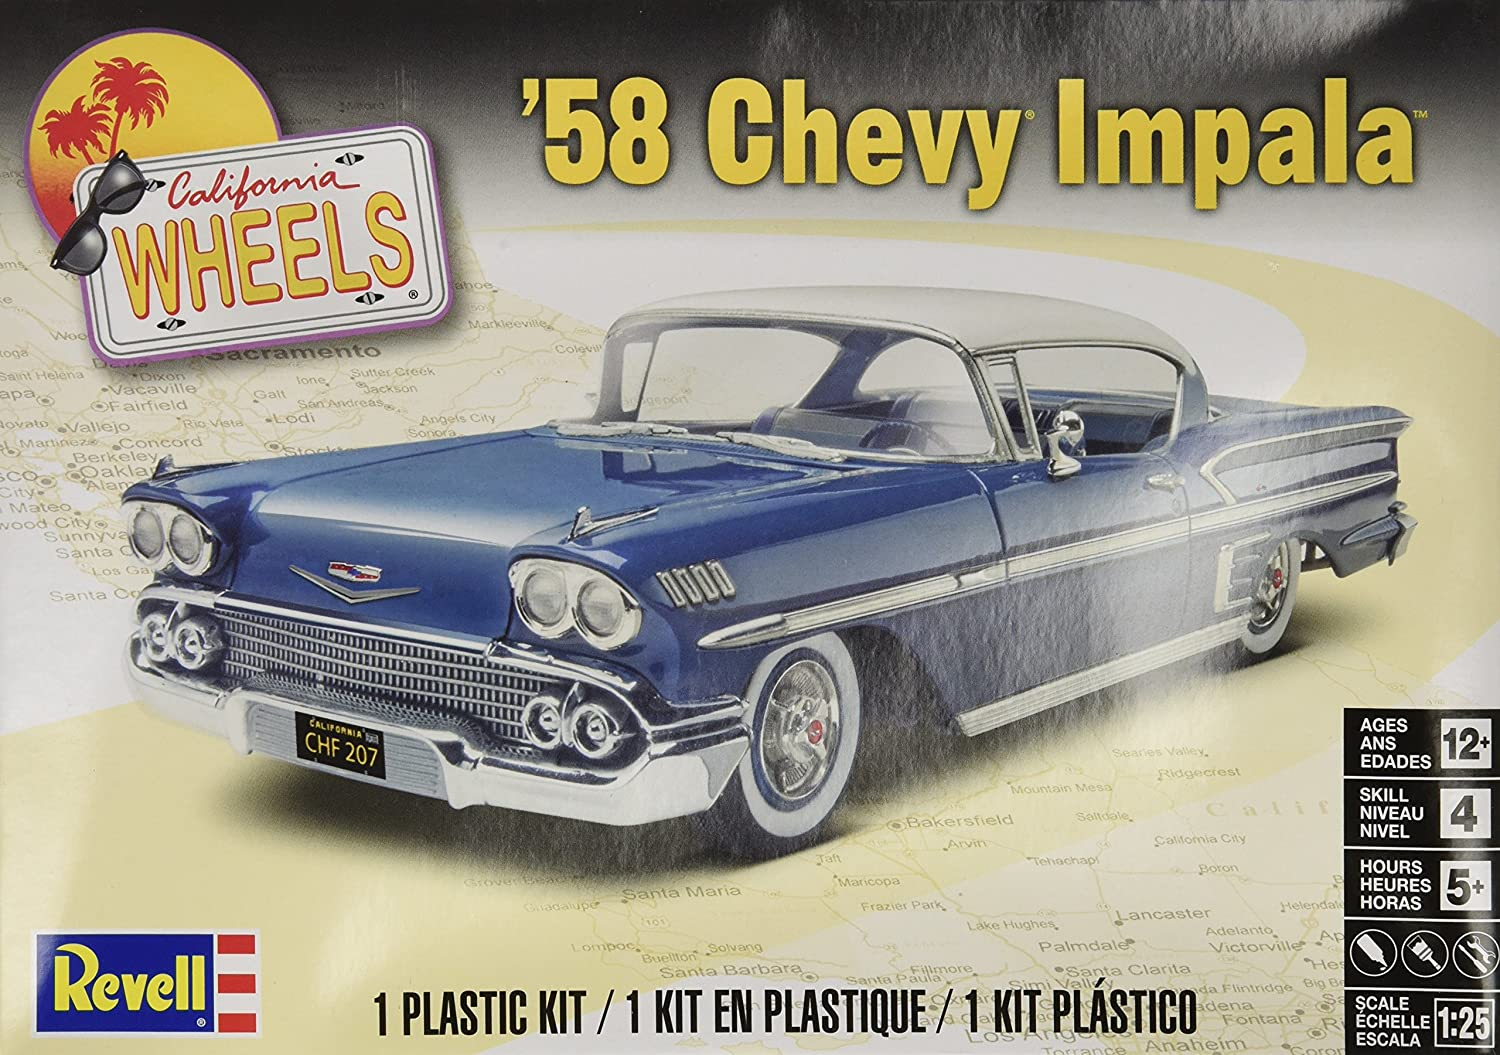 Revell 58 Chevy Impala Plastic Model Kit Toys Games 1957 Bel Air Convertible Lowrider